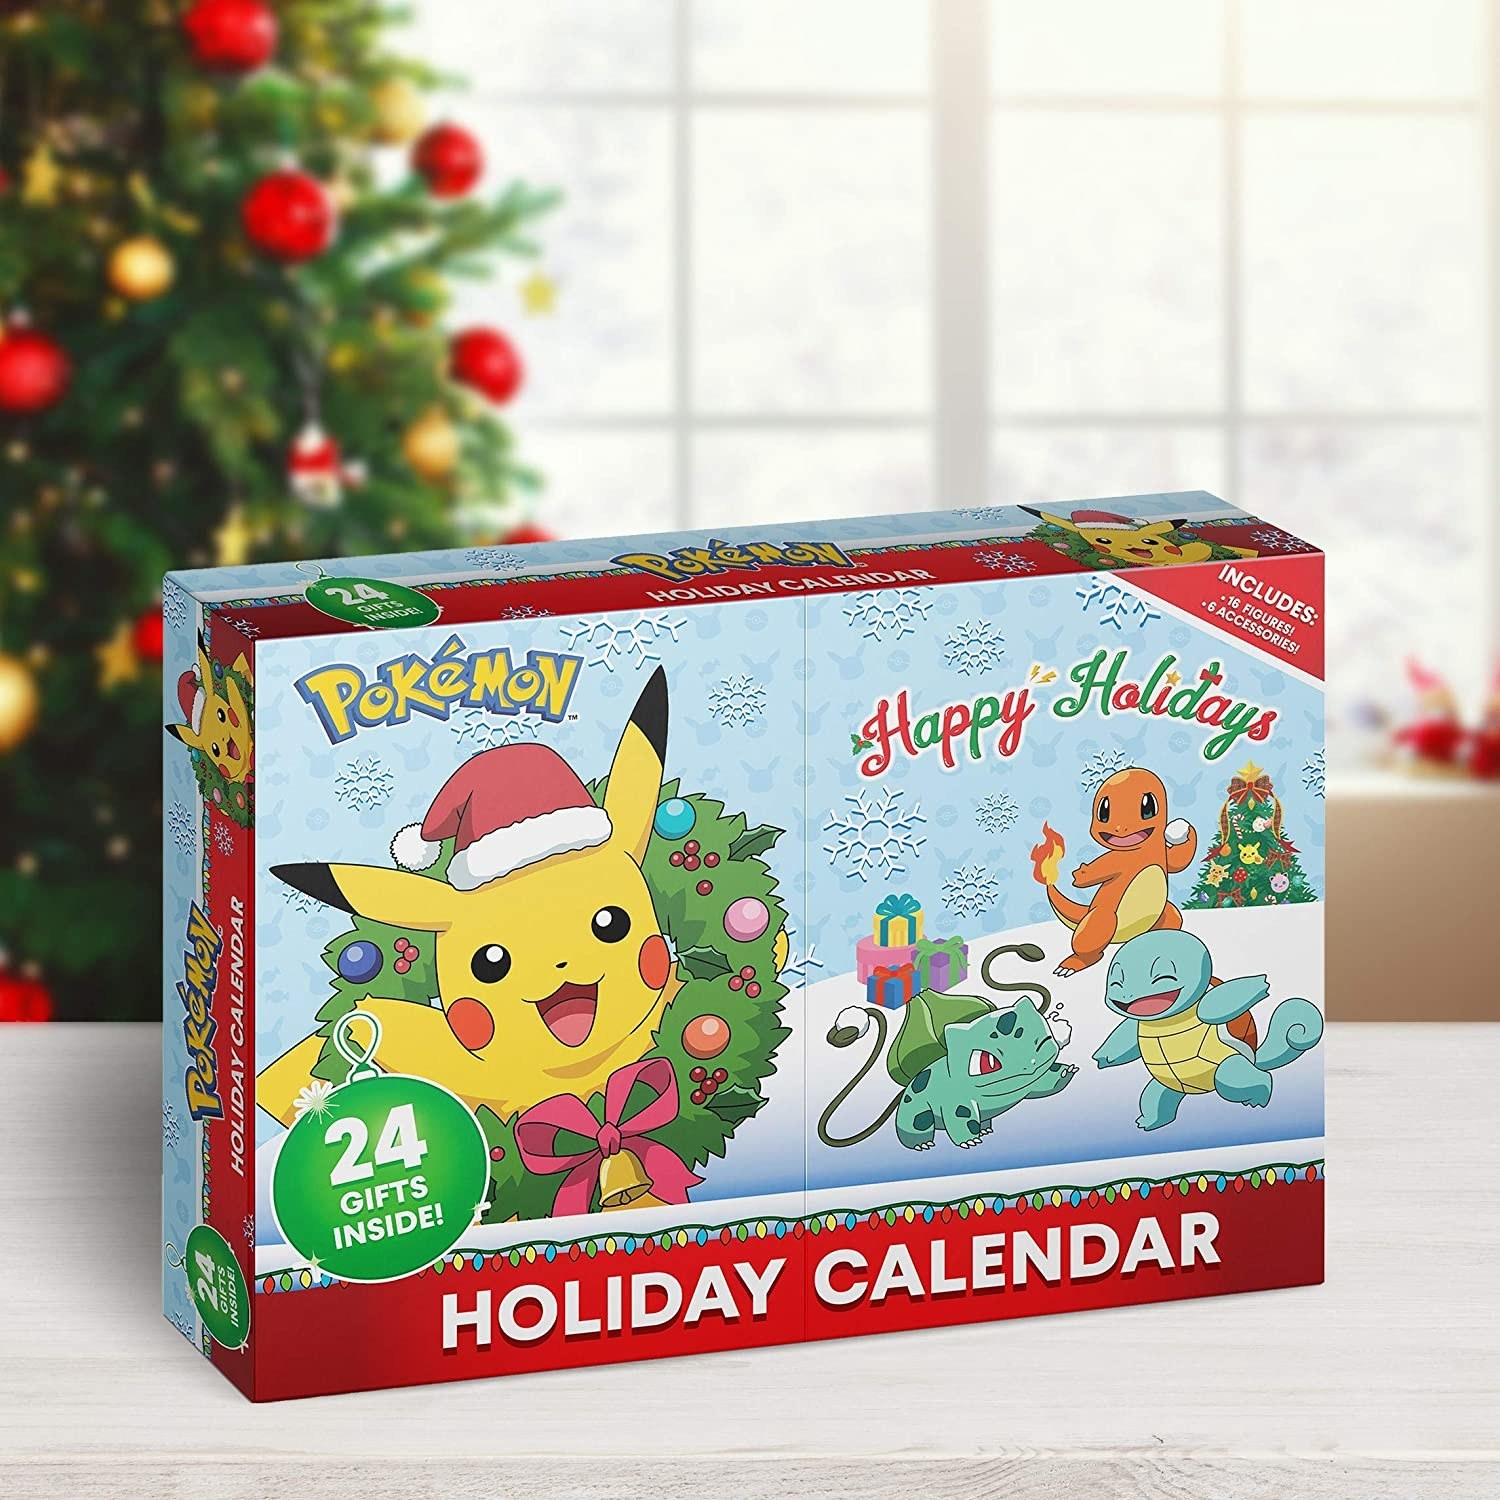 the holiday calendar box with pikachu wearing a santa hat inside a wreath on one side and happy holidays written on the other with squirtle, charmander, and bulbasaur